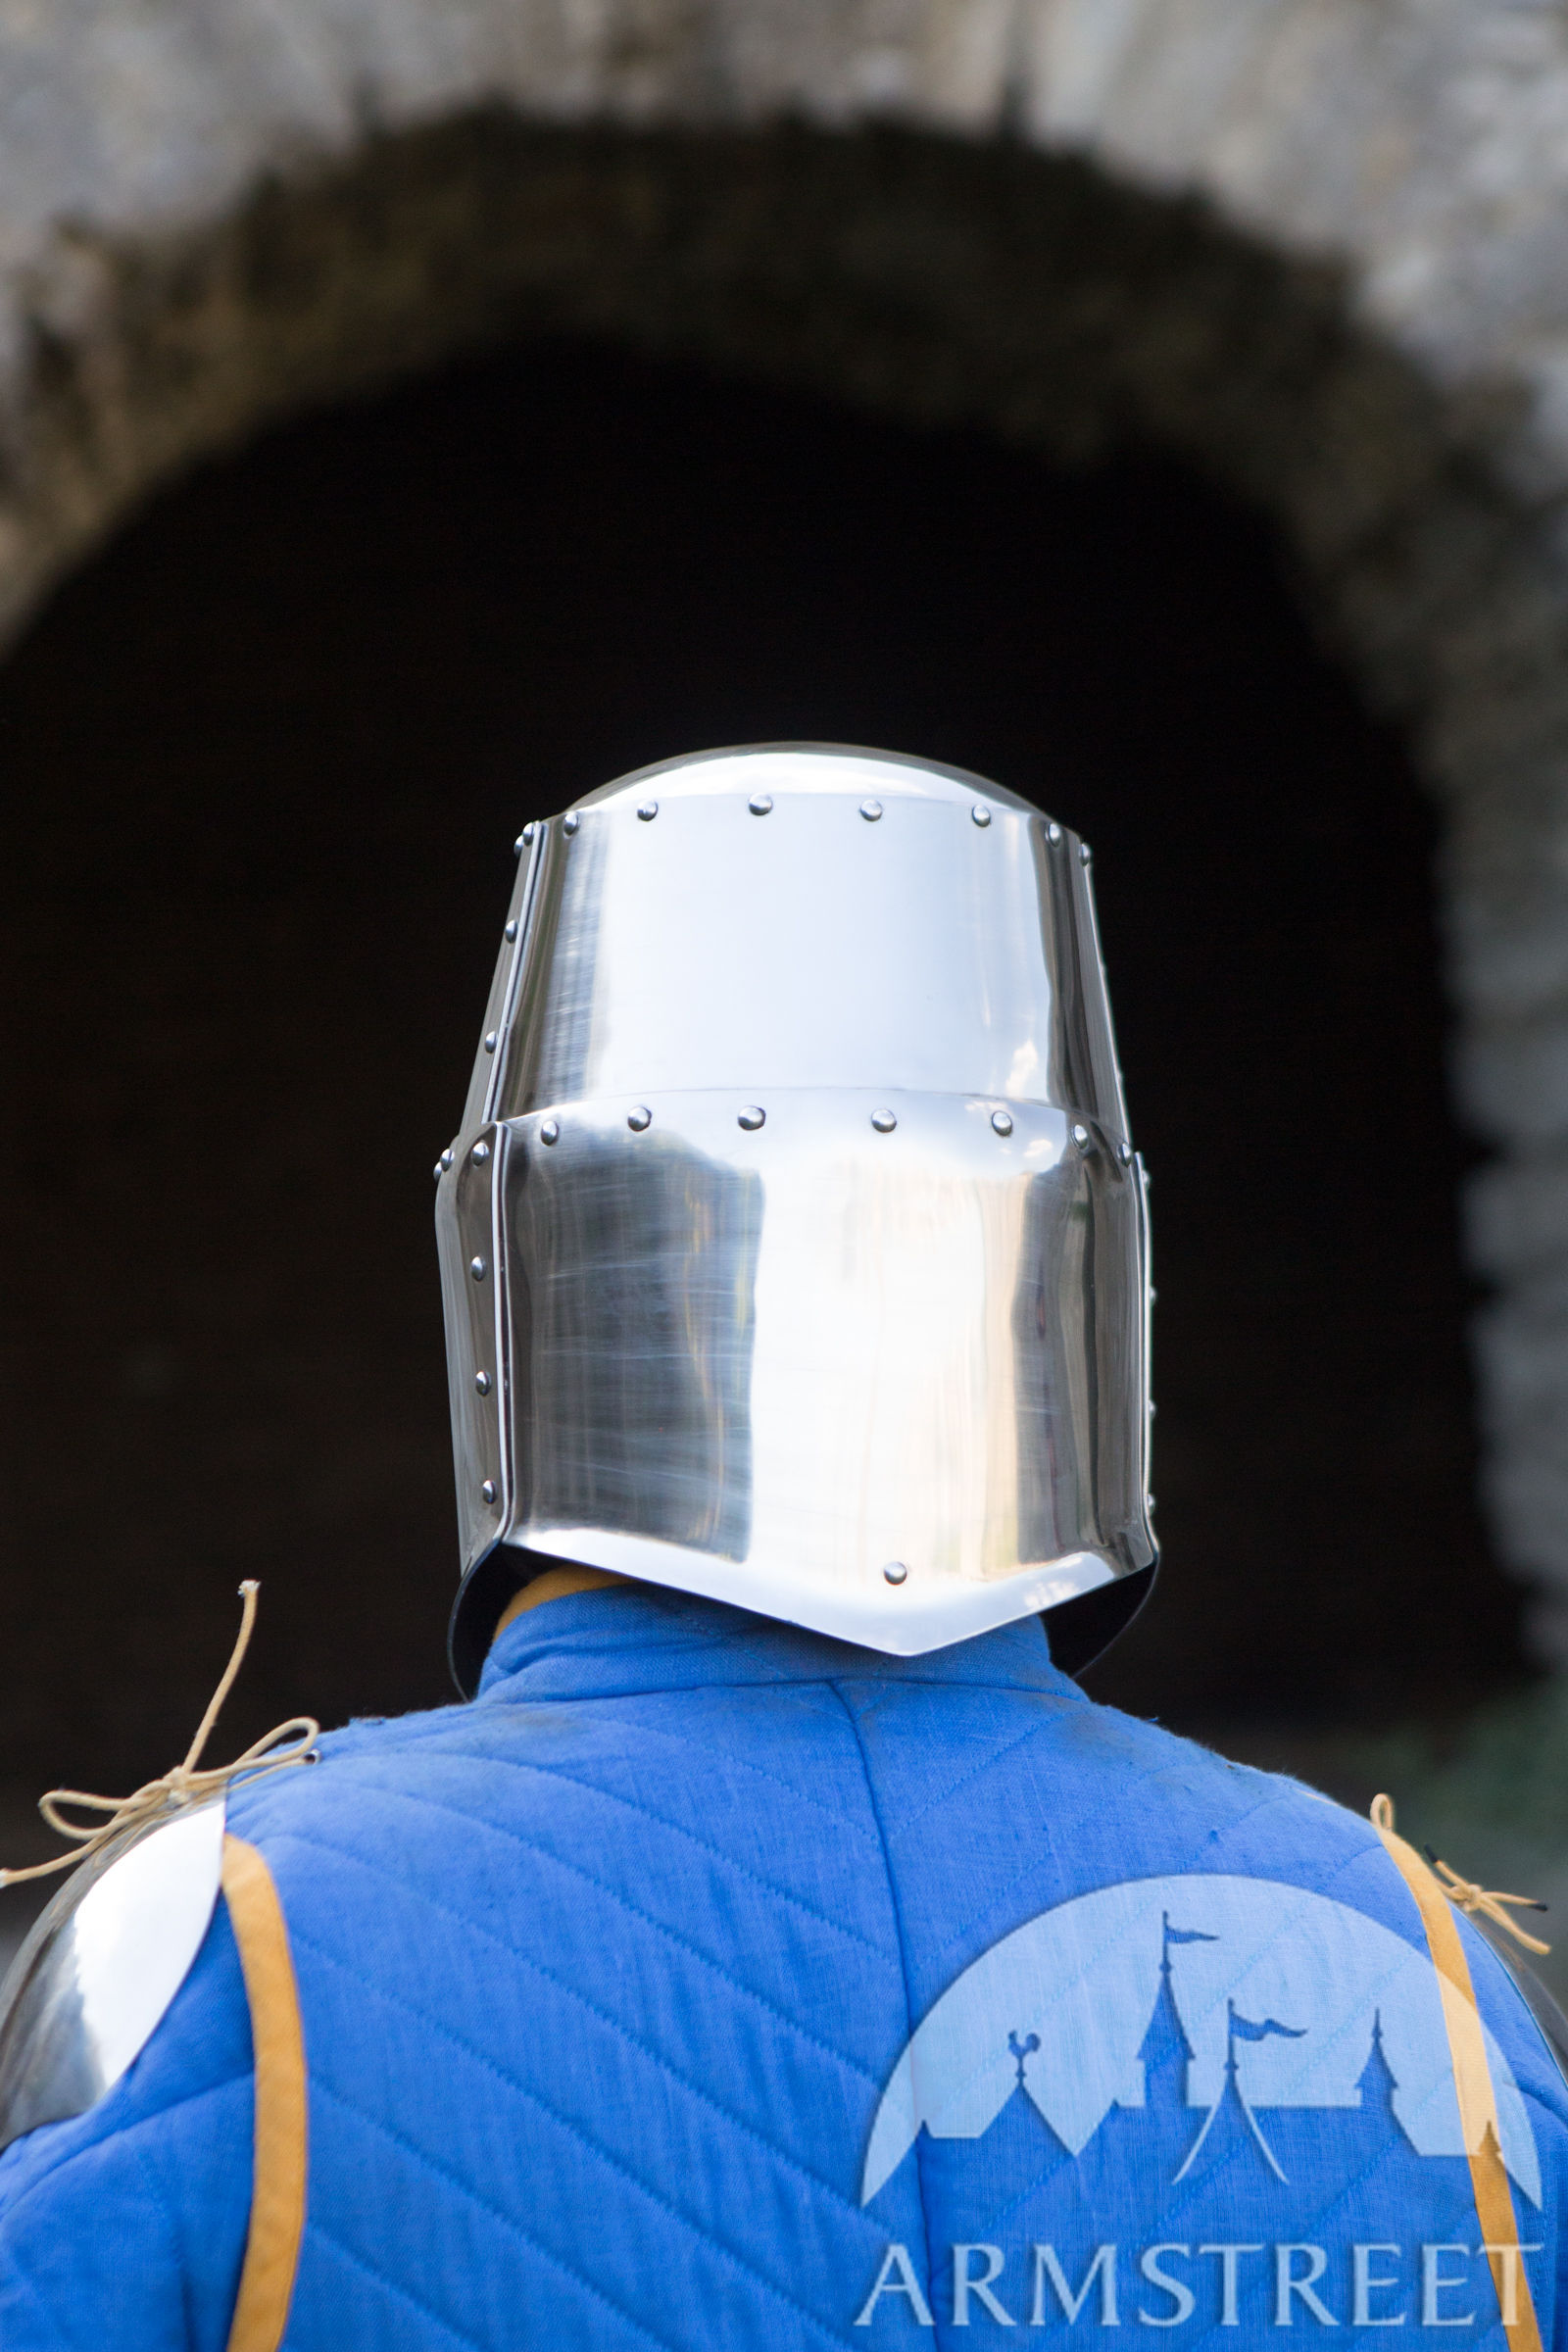 Classic Medieval Greathelm top helm for sale. Available in